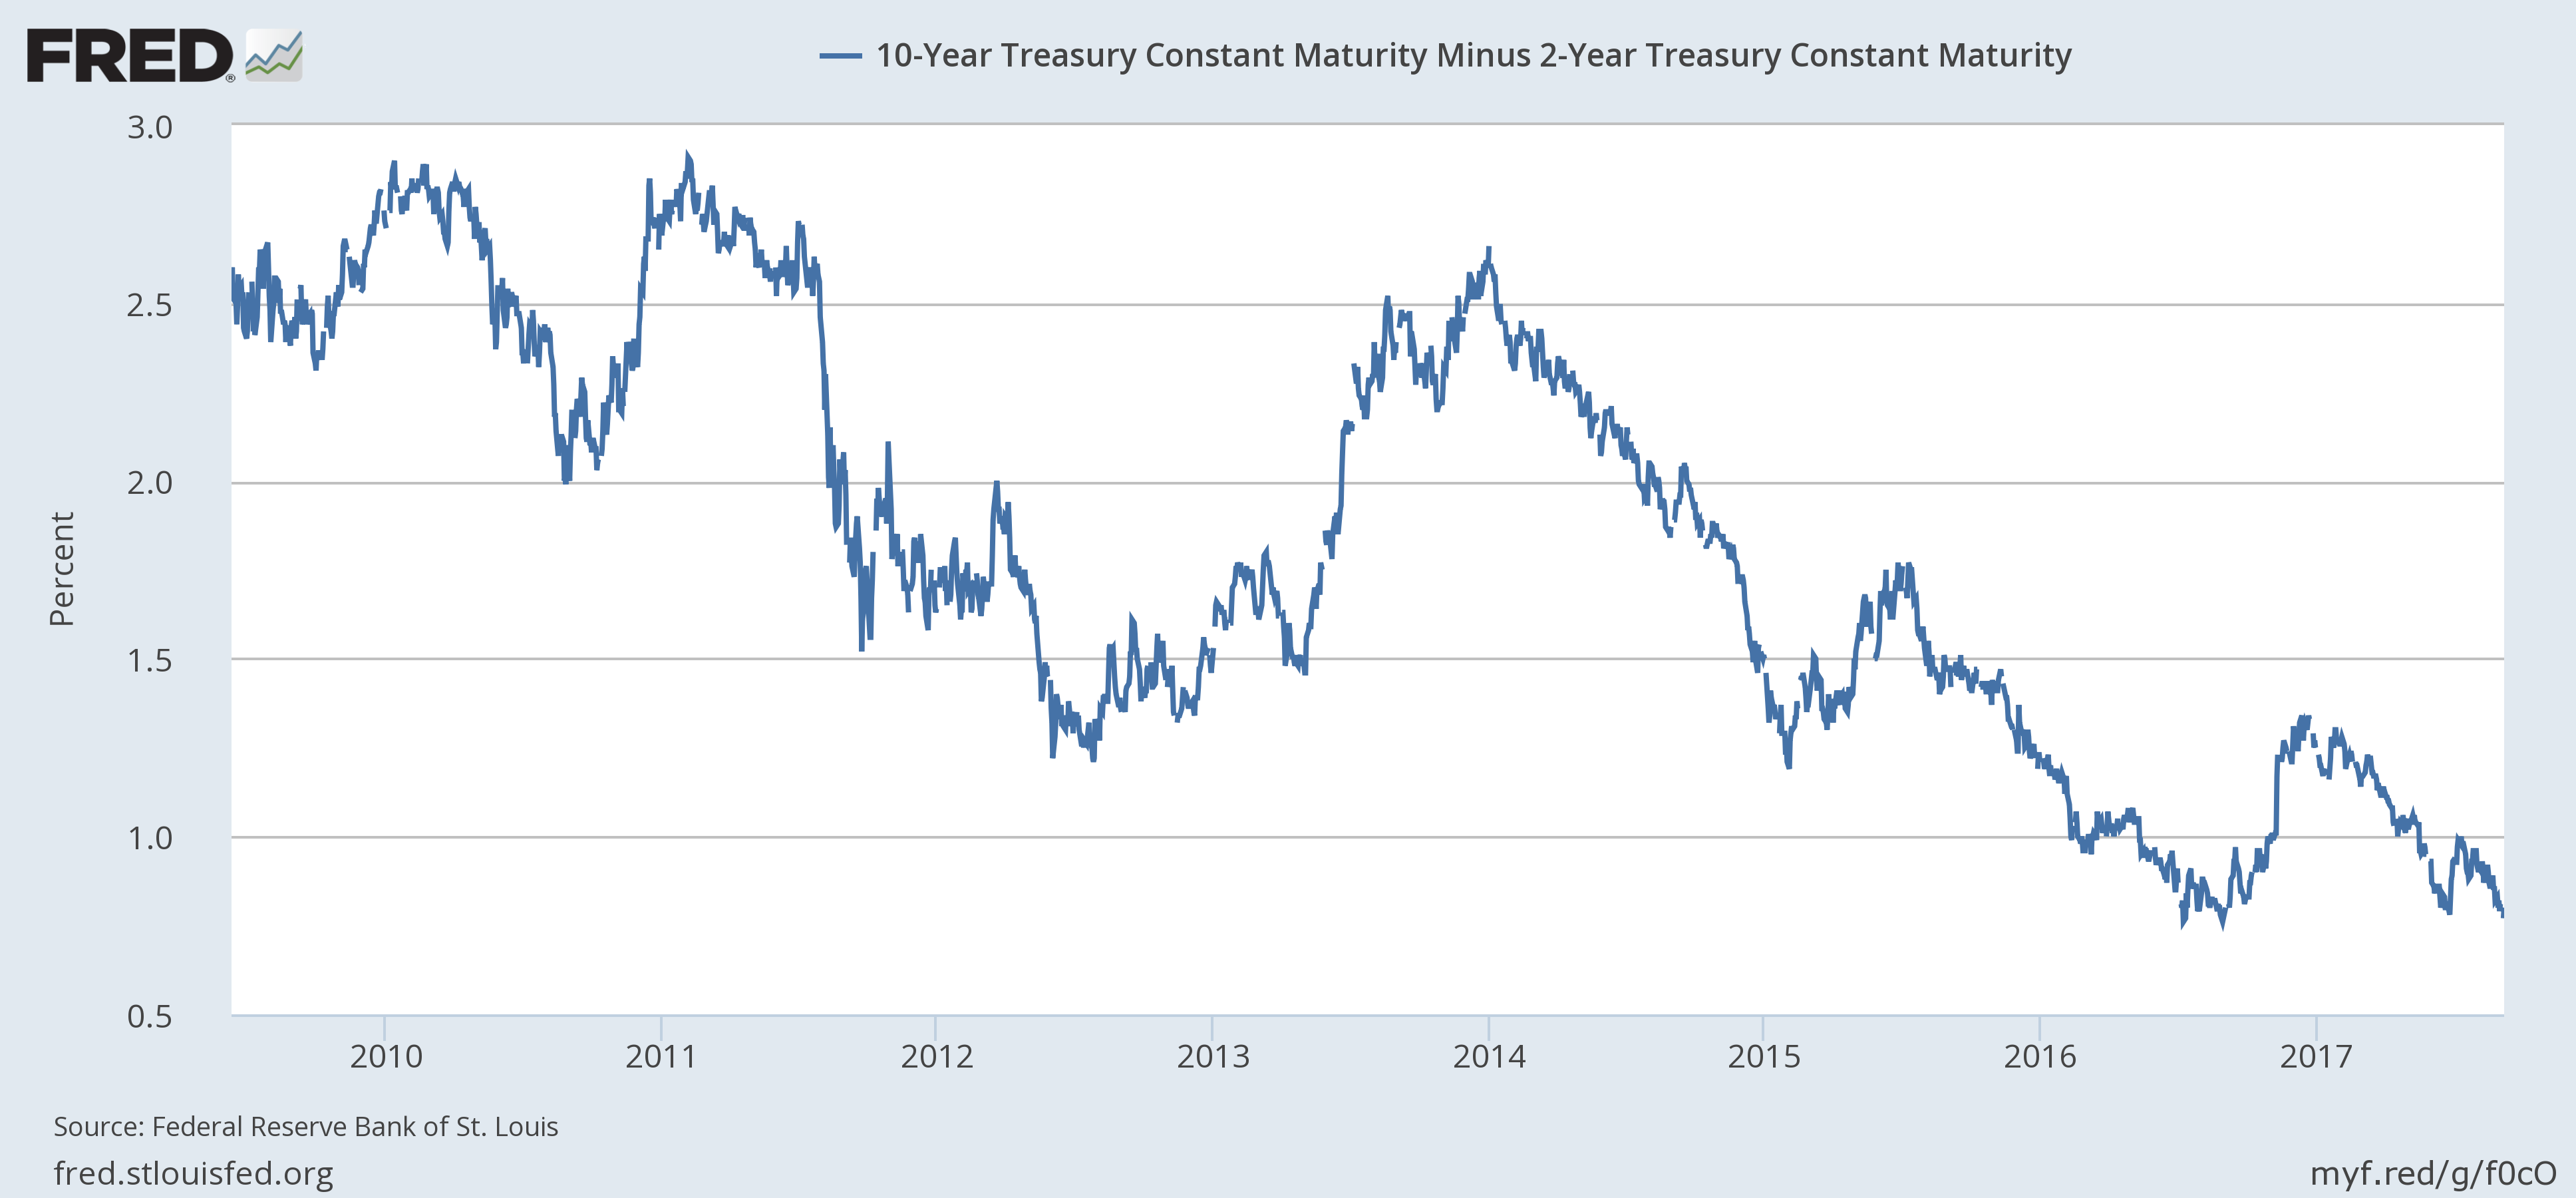 10 Year Treasury Constant Maturity Minus 2 Year Treasury Constant Maturity, 2010 - 2017